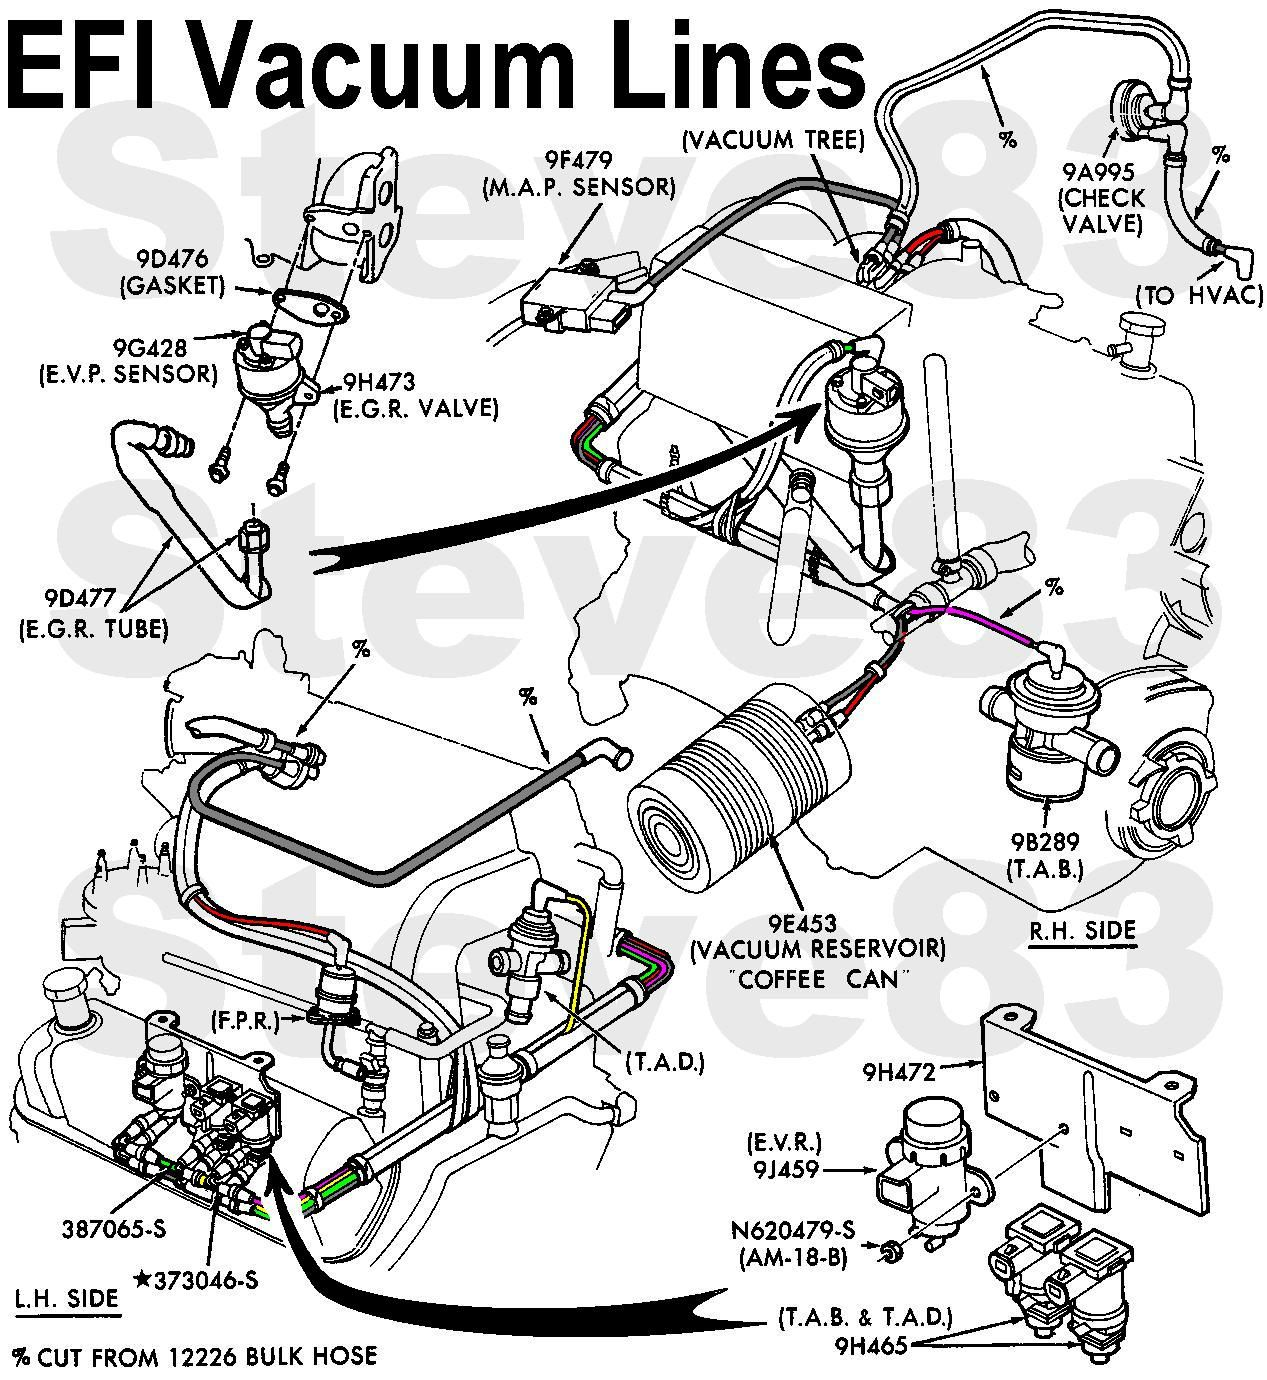 hight resolution of engine bay schematic showing major electrical ground points for 4 0l jeep cherokee engines jeep jeep jeep cherokee 2001 jeep cherokee